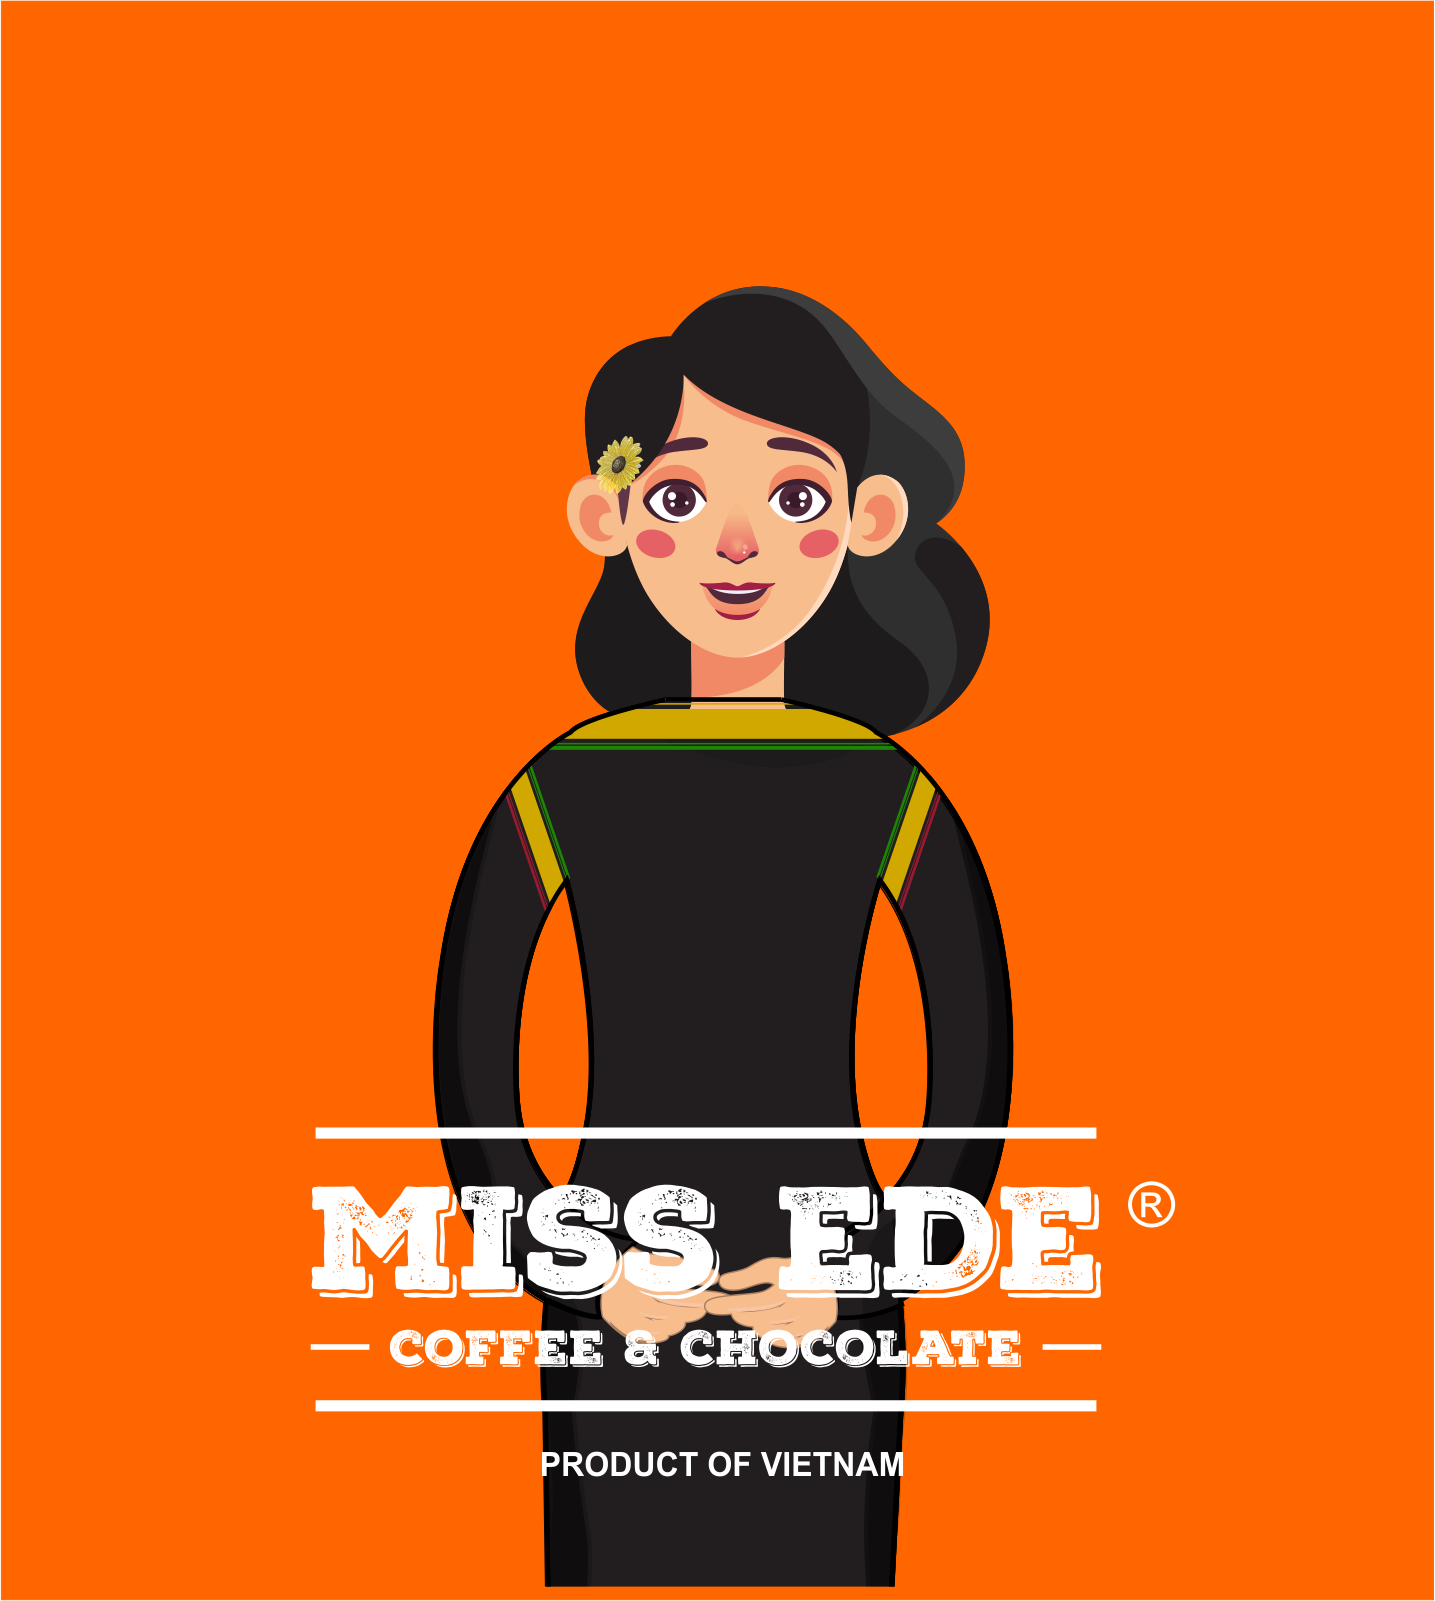 MISS EDE Coffee & Chocolate